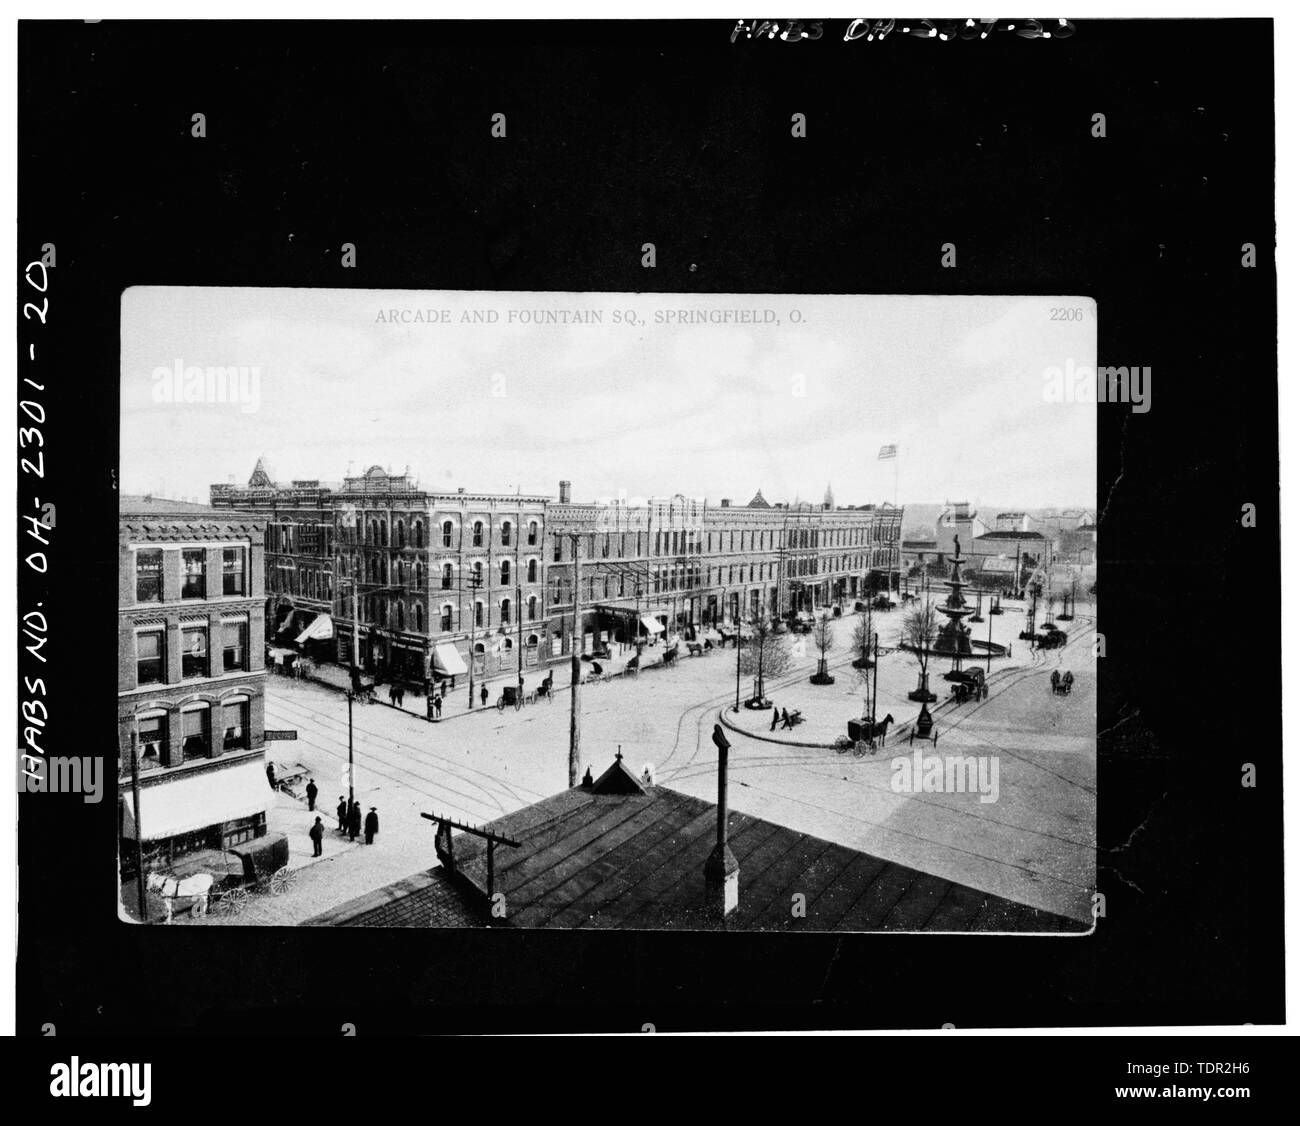 Photograph of postcard (from the Clark County Historical Society, Springfield, Ohio, no date), ARCADE AND FOUNTAIN SQUARE, VIEW SOUTHEAST, WEST AND NORTH FACADES. - Arcade Hotel, Fountain Avenue, bounded by High and Washington Streets, Springfield, Clark County, OH - Stock Image